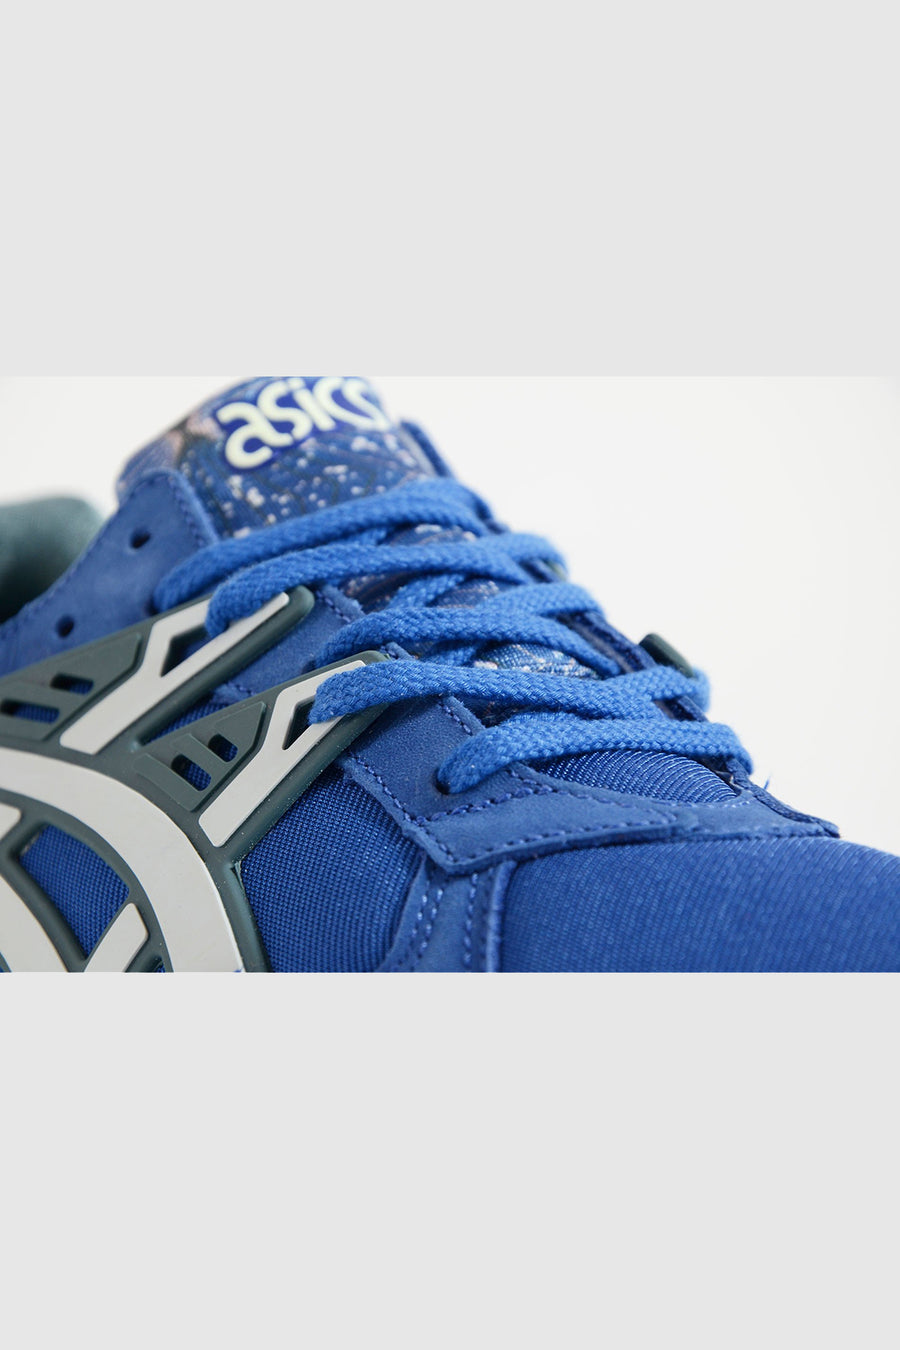 Asics - Gel Kayano Trainer (Plein Air/ Monaco Blue)